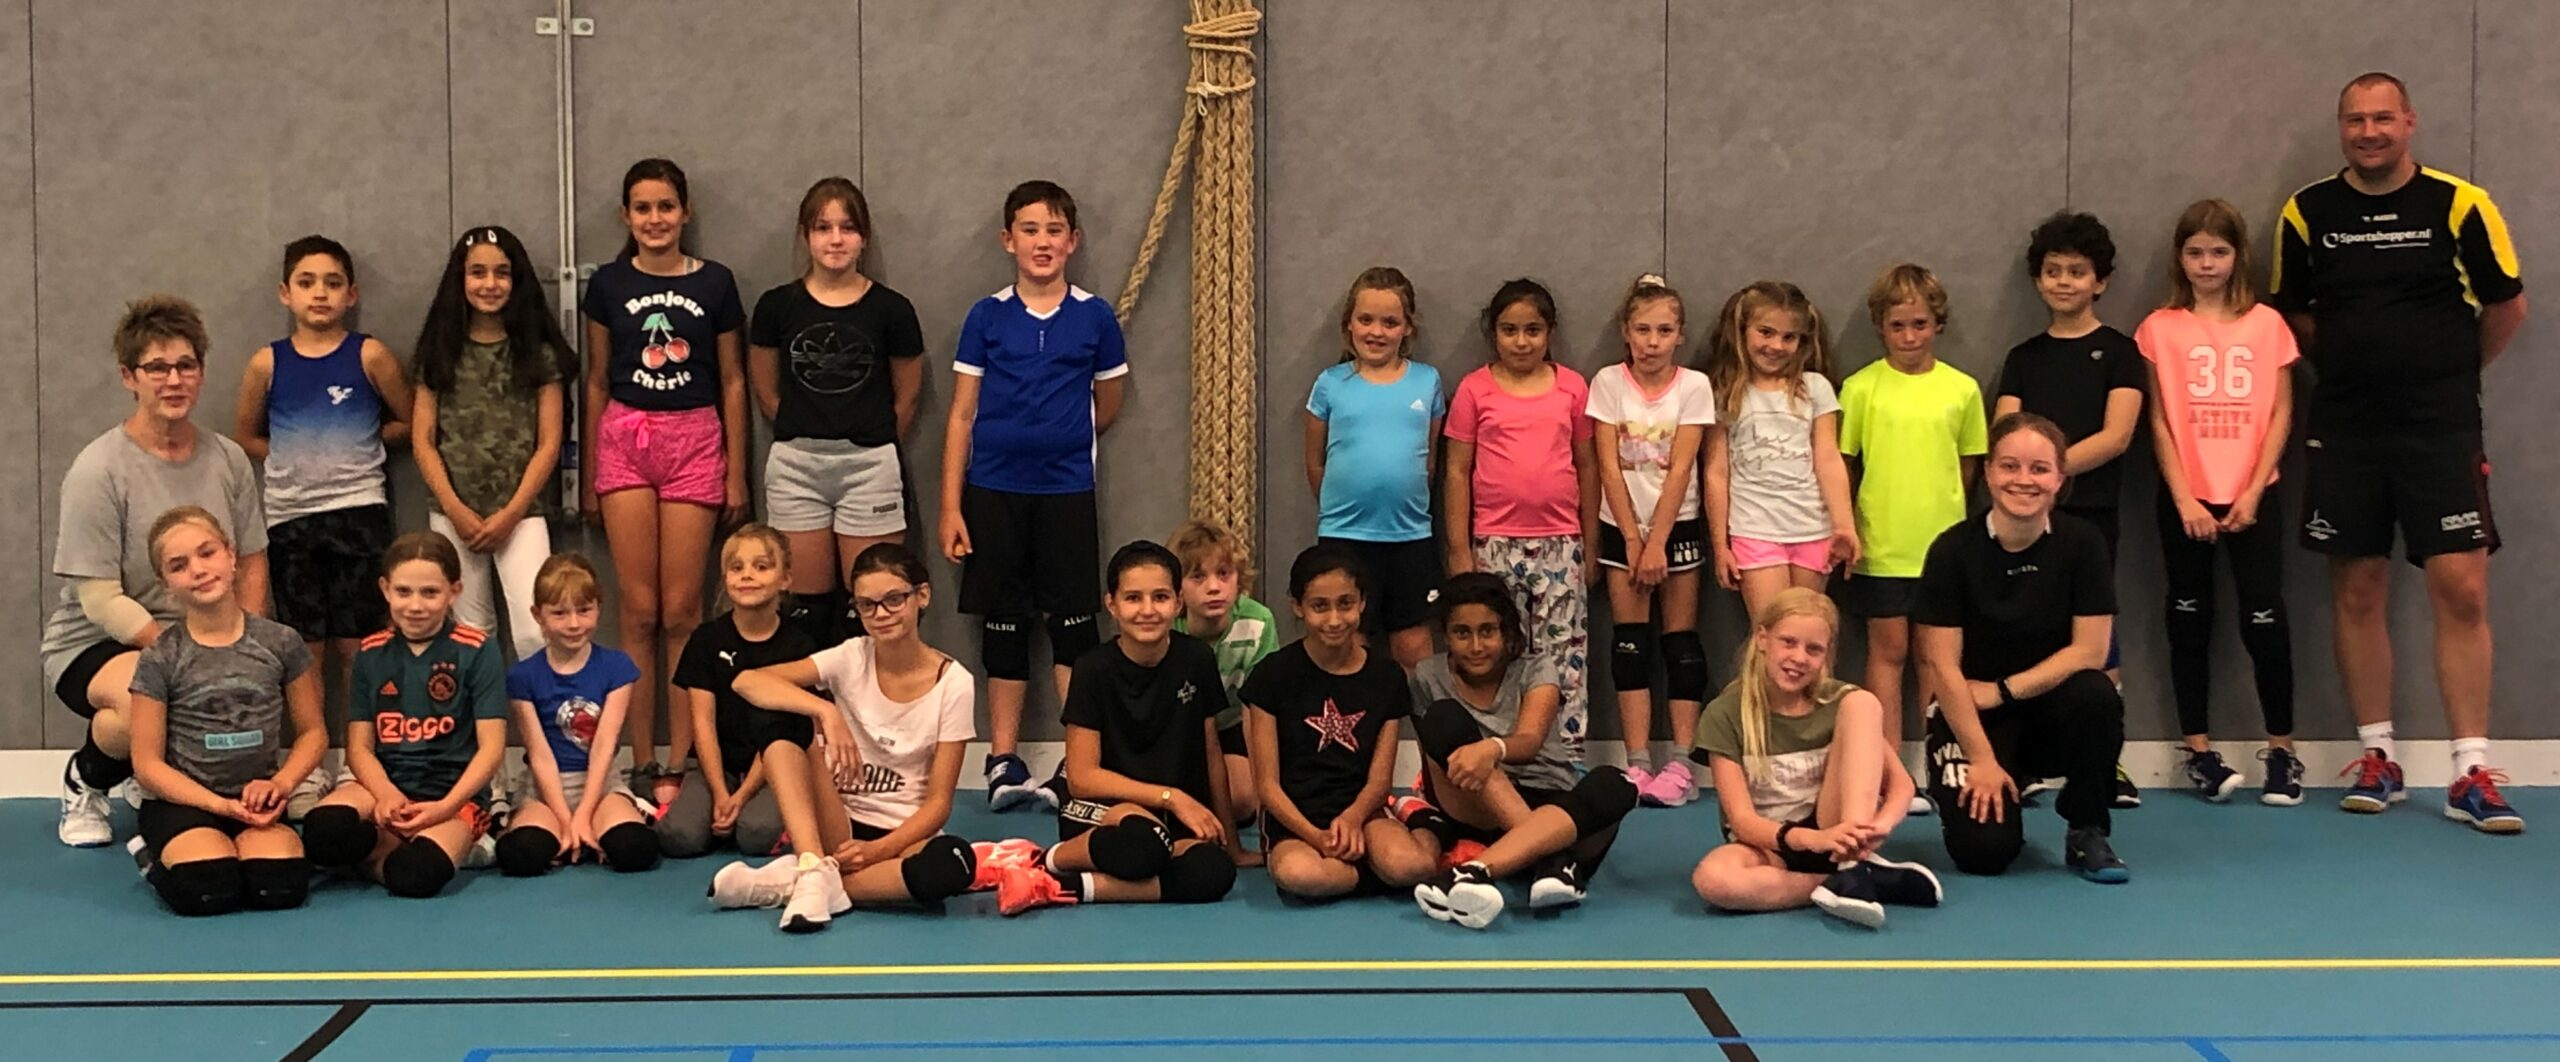 Volleybal Almere Mini's